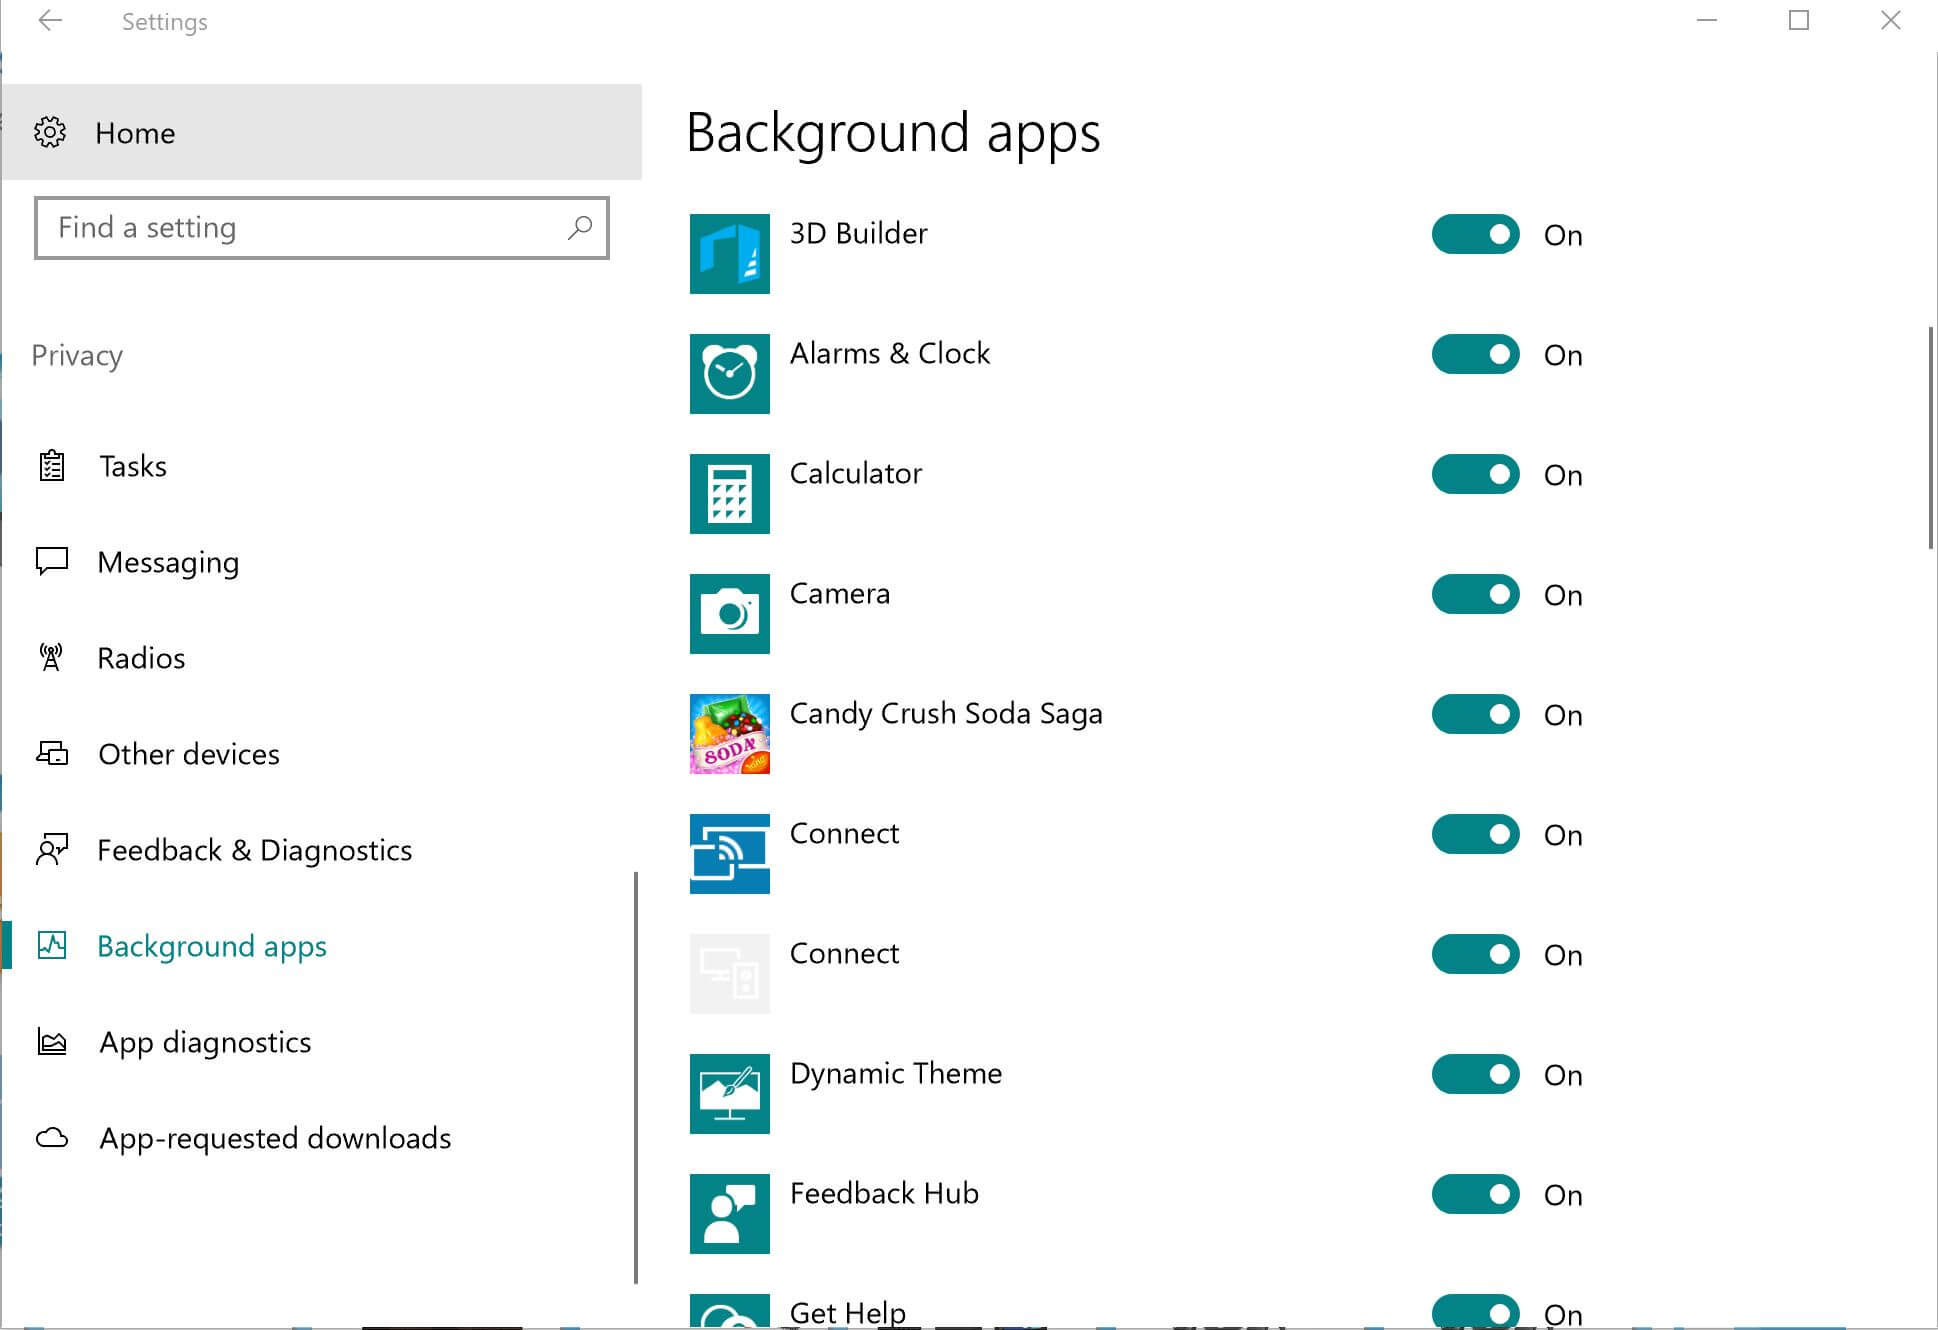 The background apps settings in Windows 10